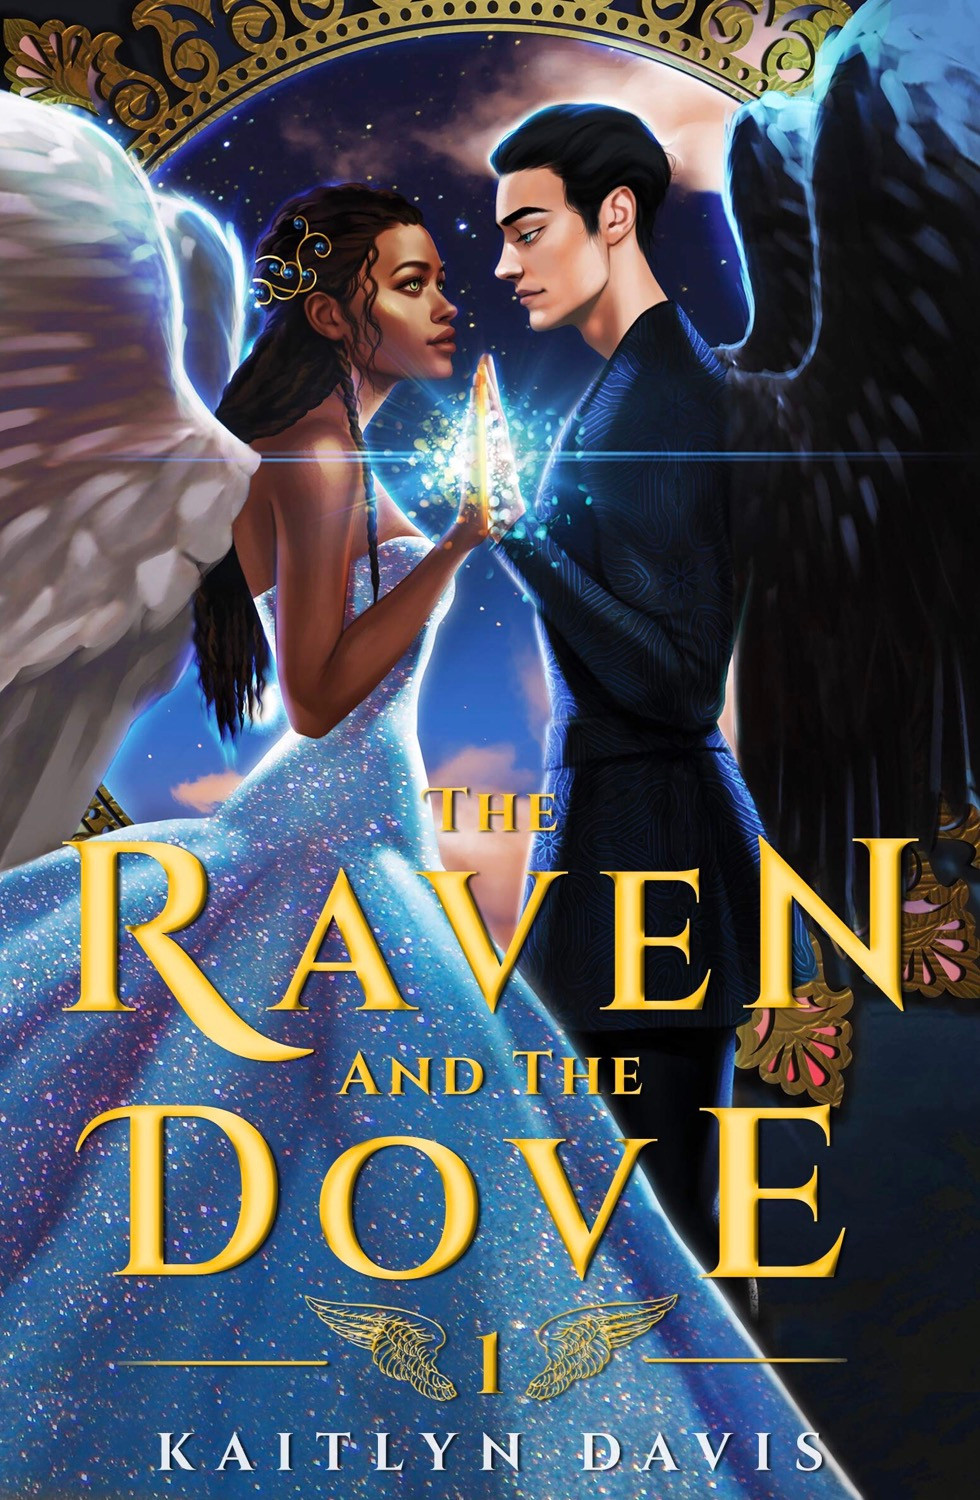 Cover of The Raven and the Dove by Kaitlyn Davis